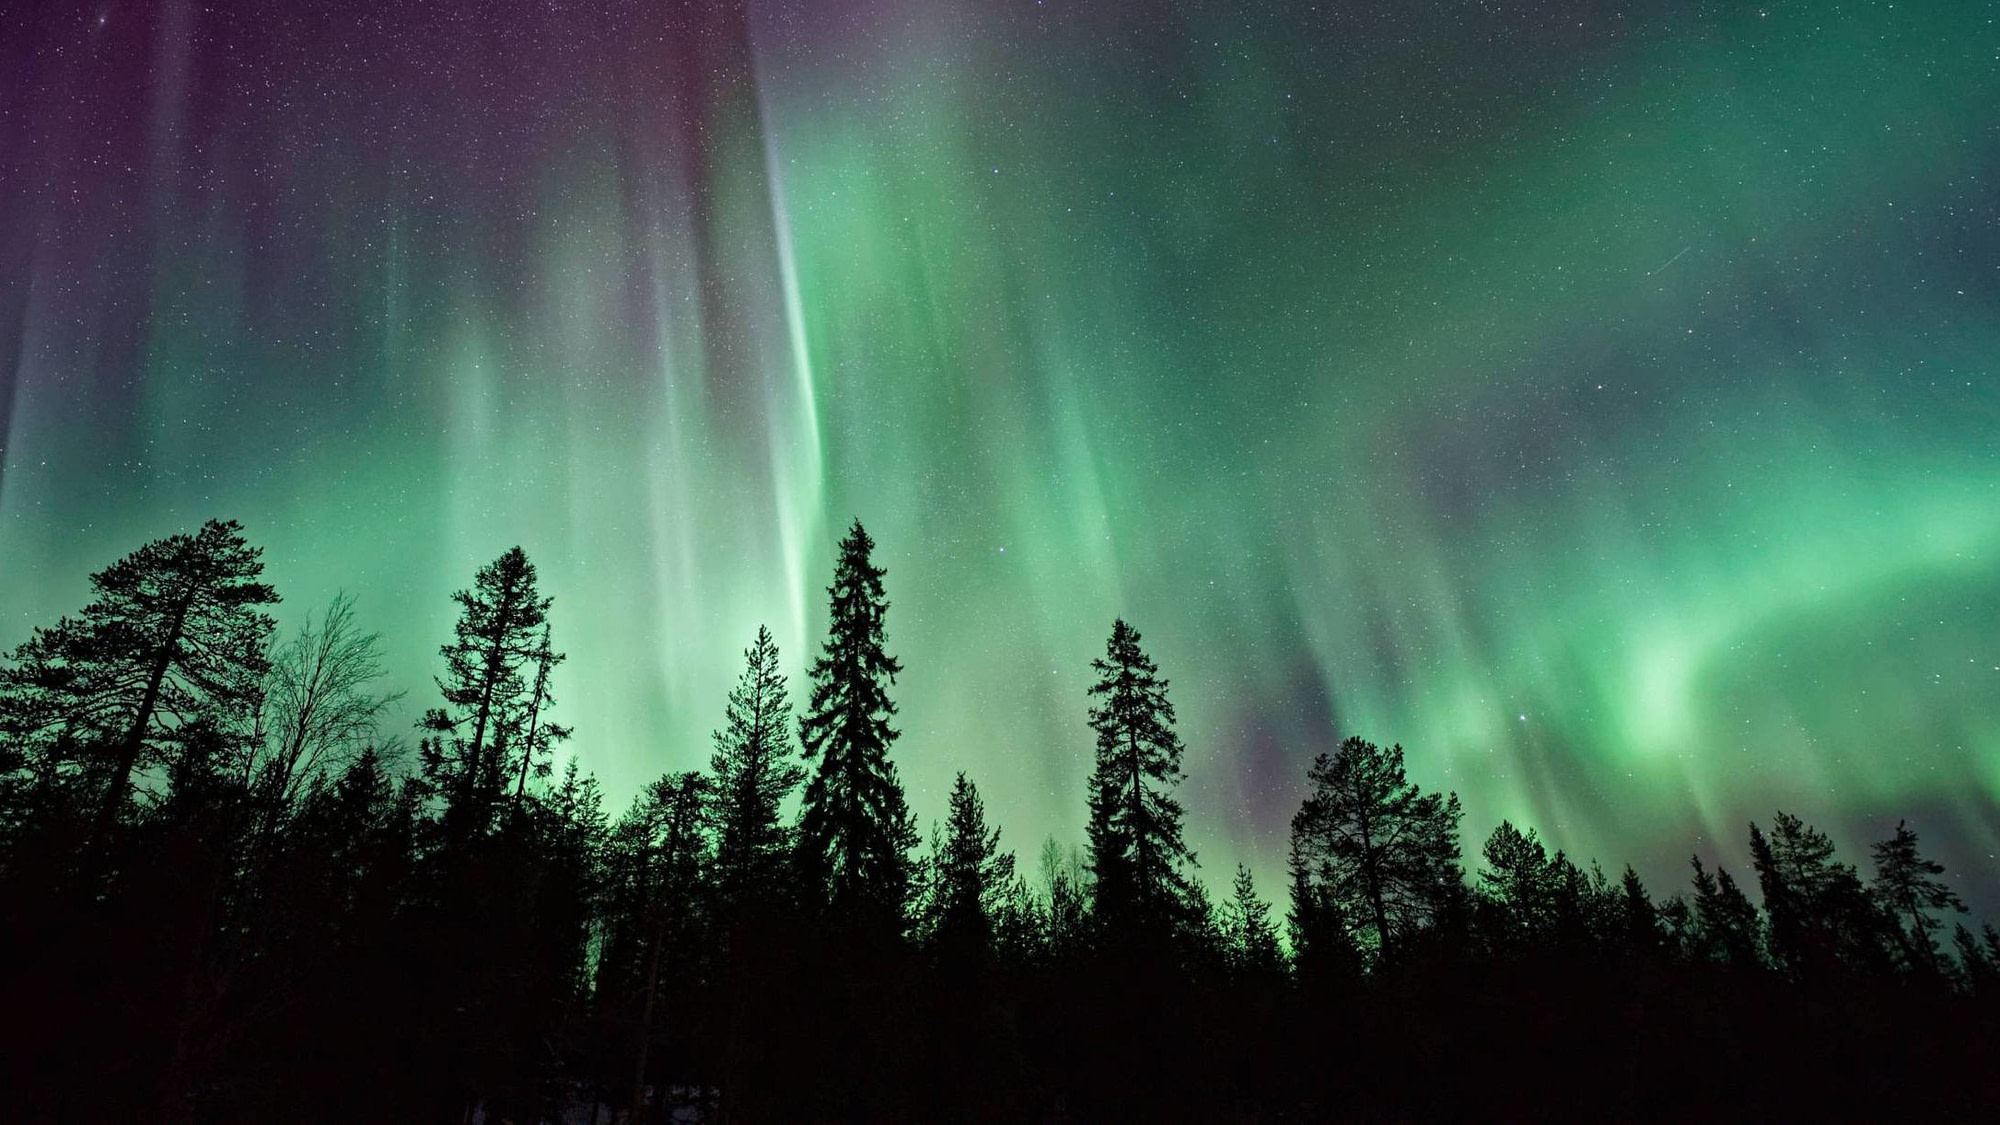 A nature shot of the Auora Borealis in Iceland.